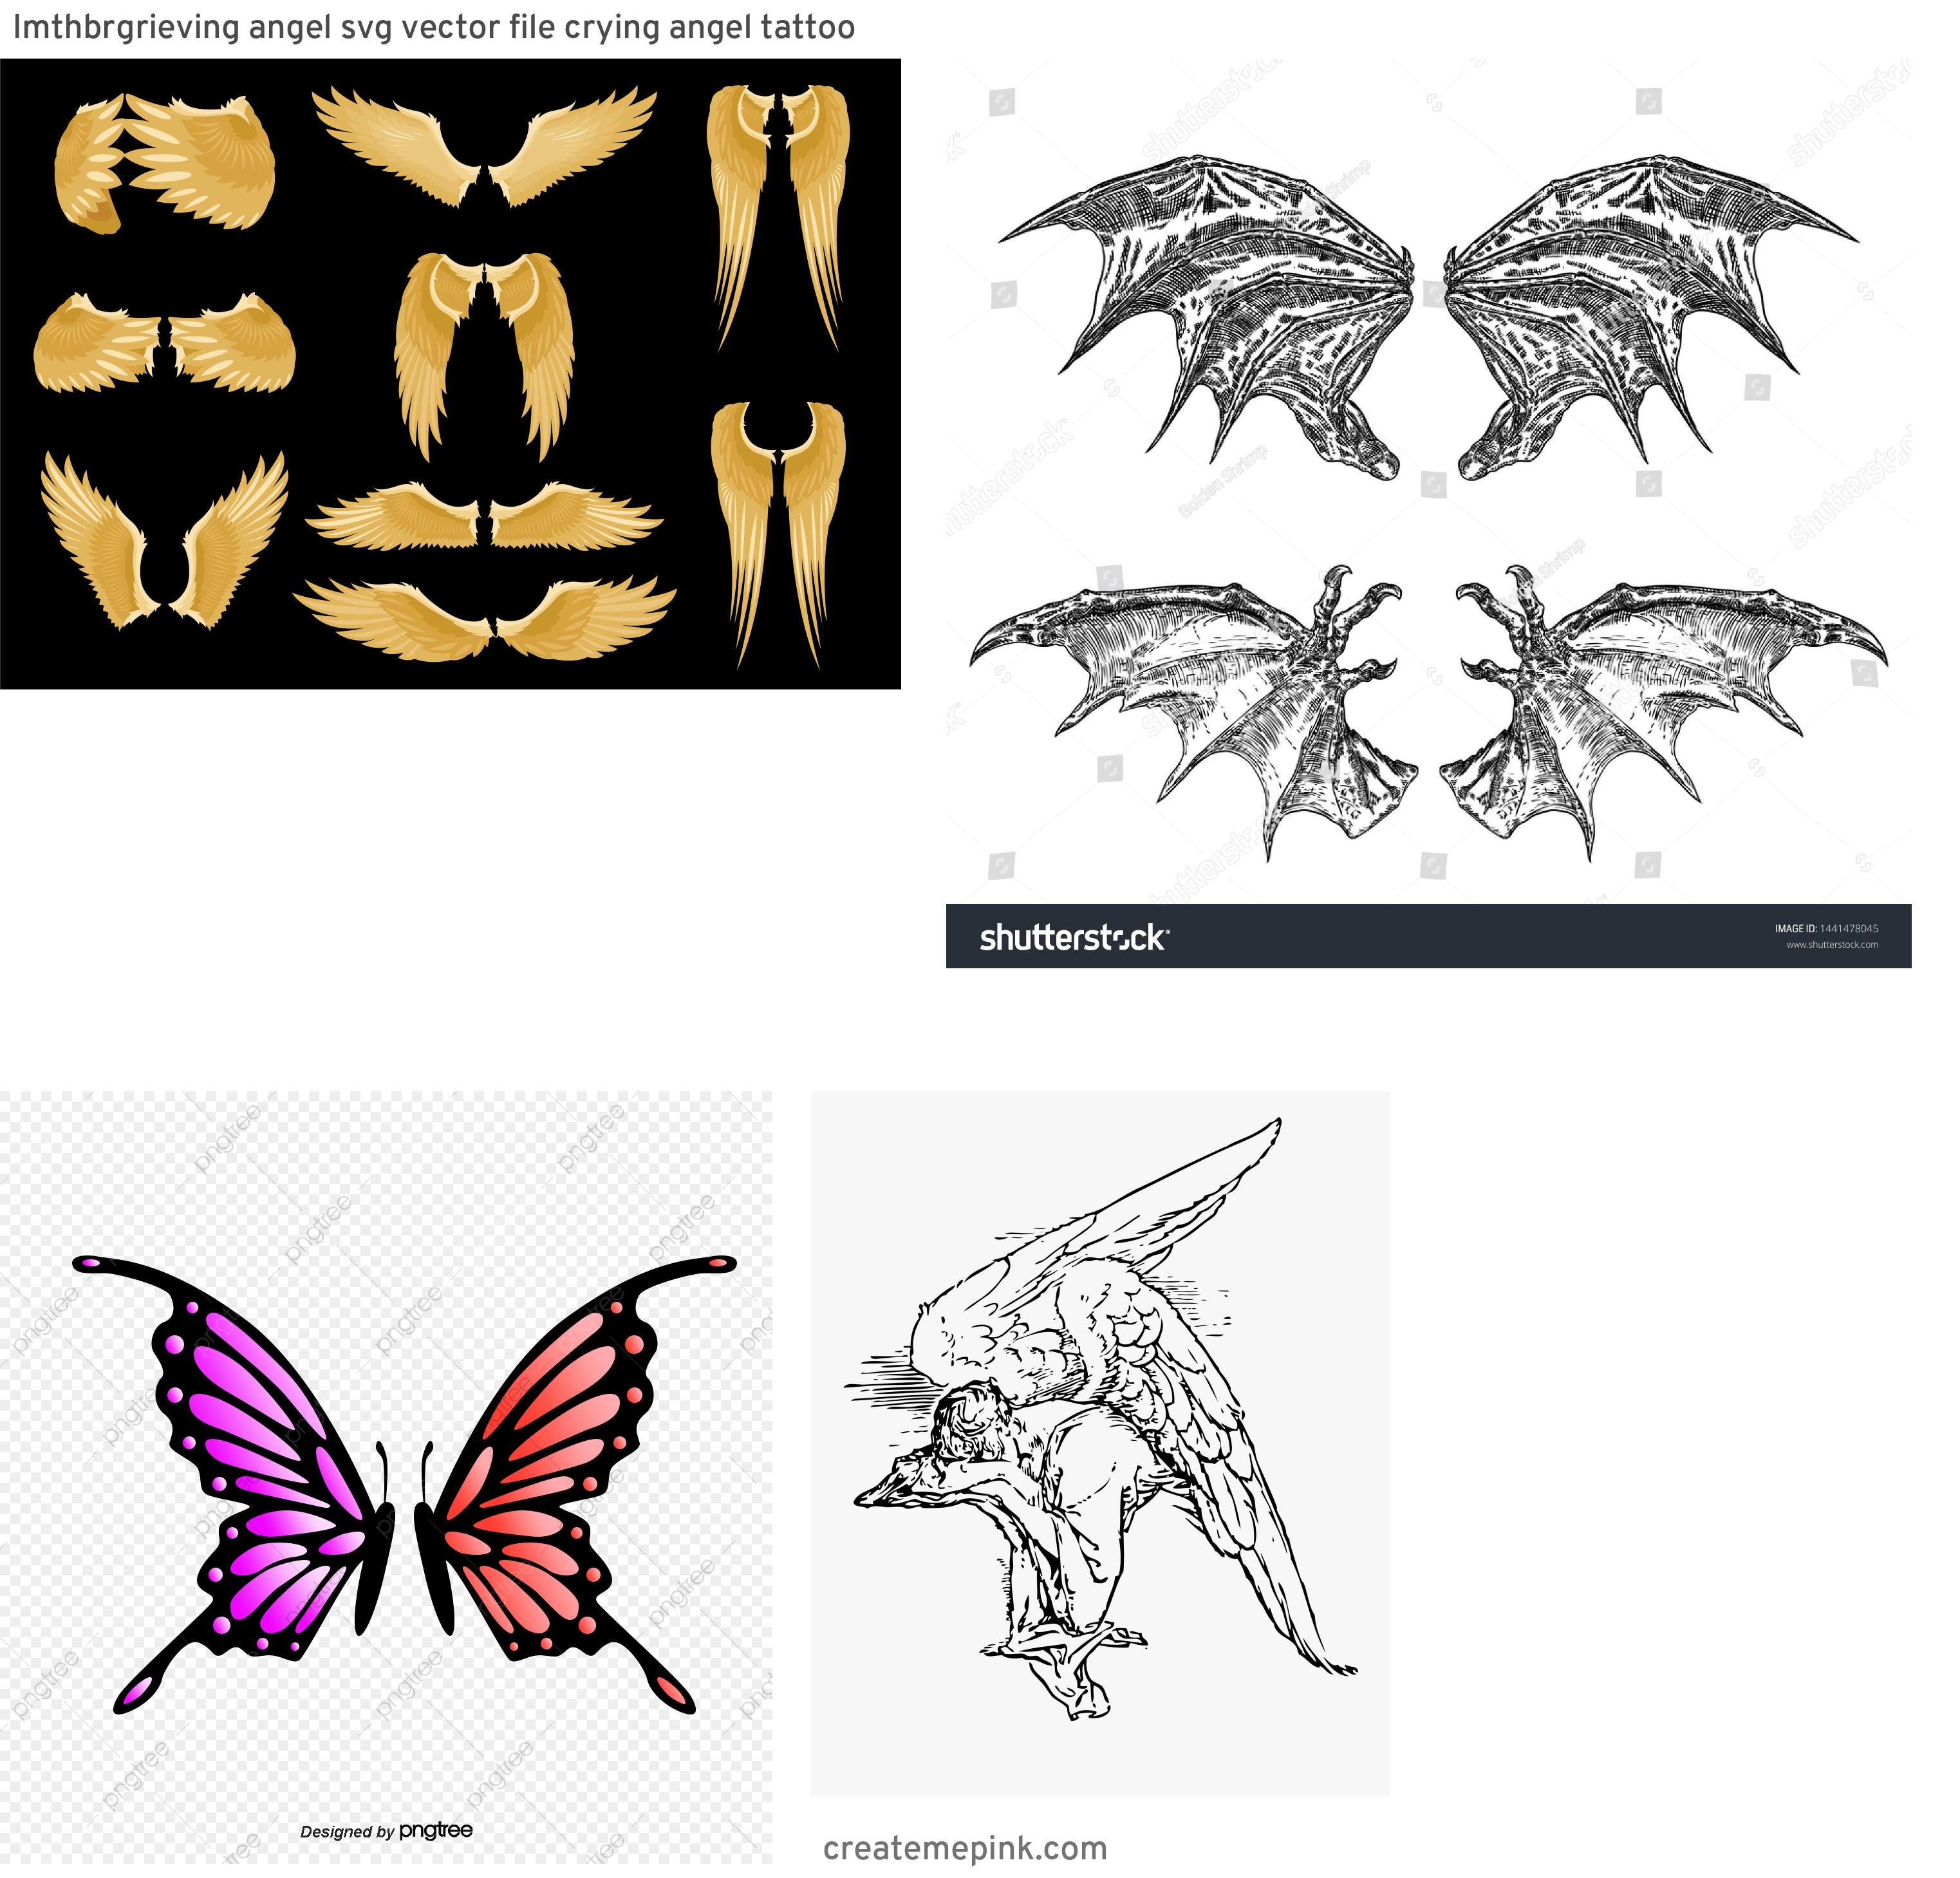 Fallen Angel Wings Vector: Imthbrgrieving Angel Svg Vector File Crying Angel Tattoo